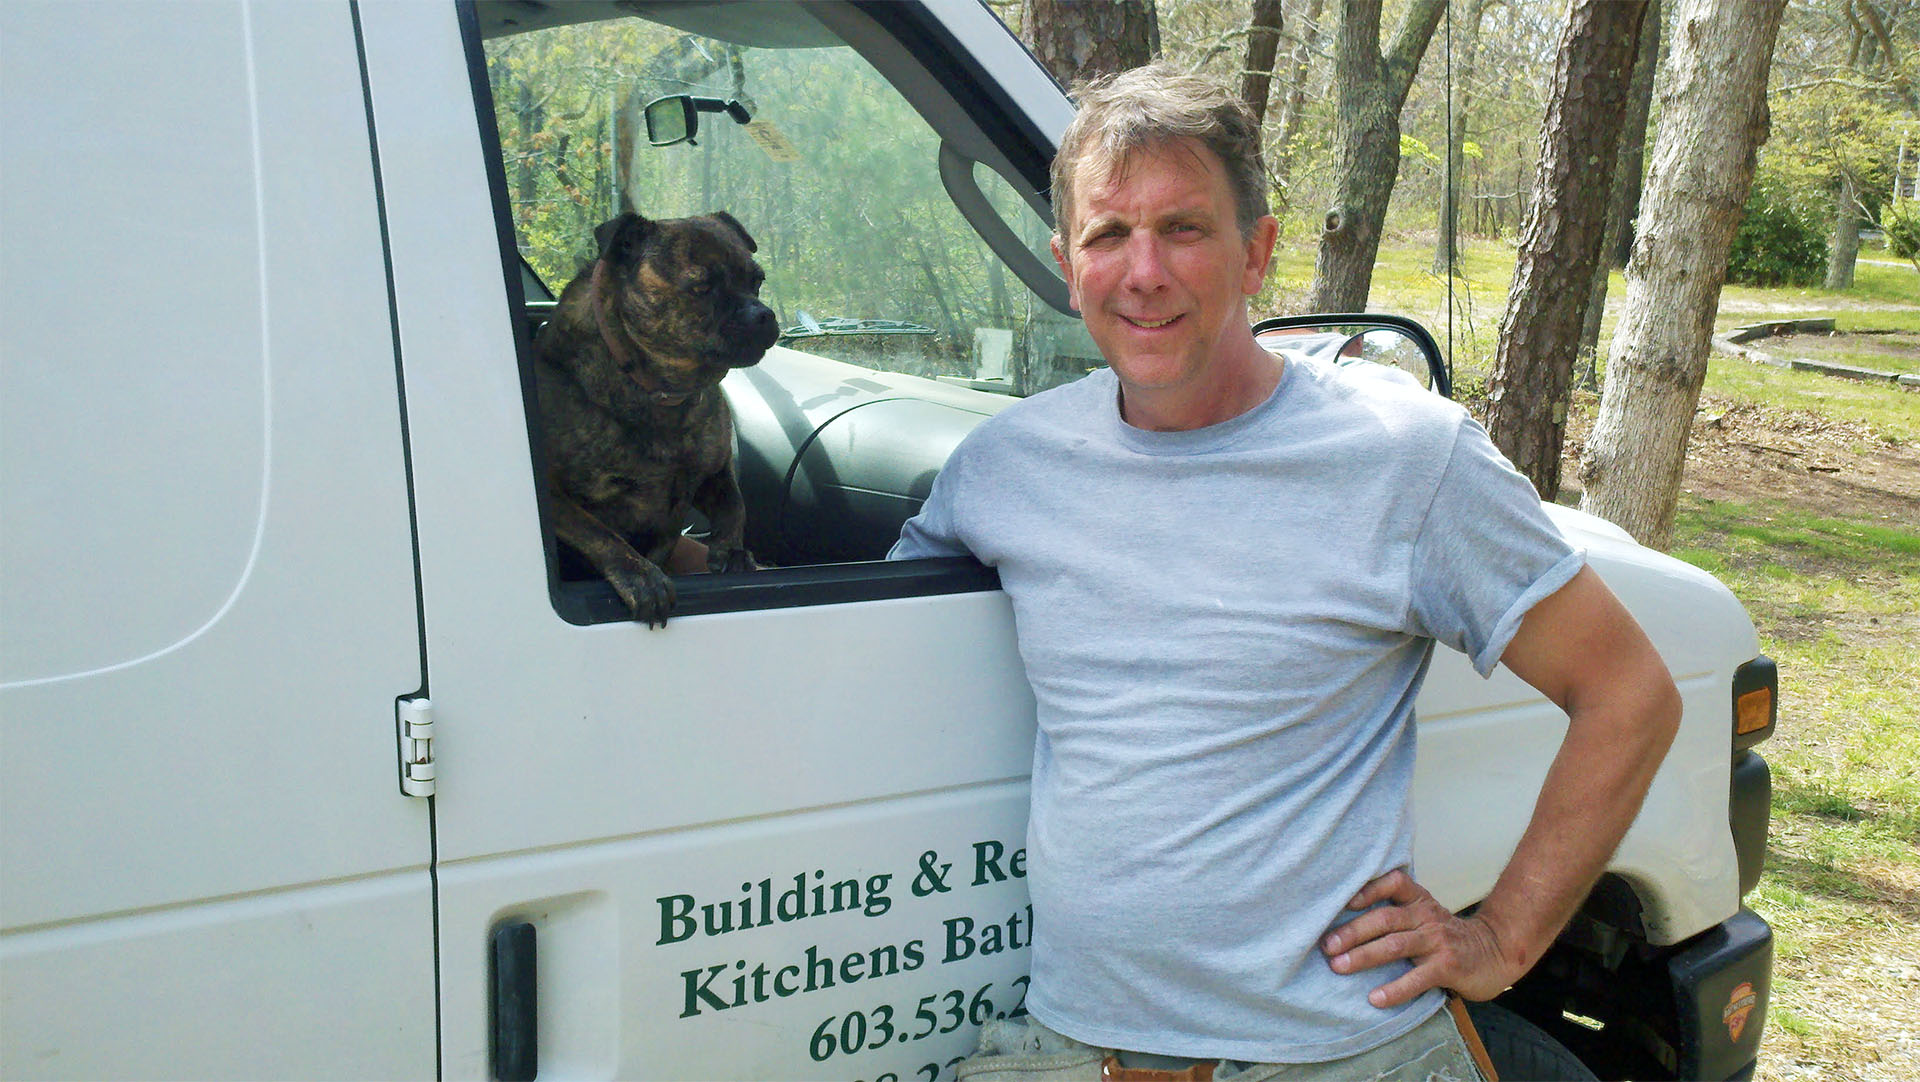 Carpentry By Allen -Owner with his dog Smokey